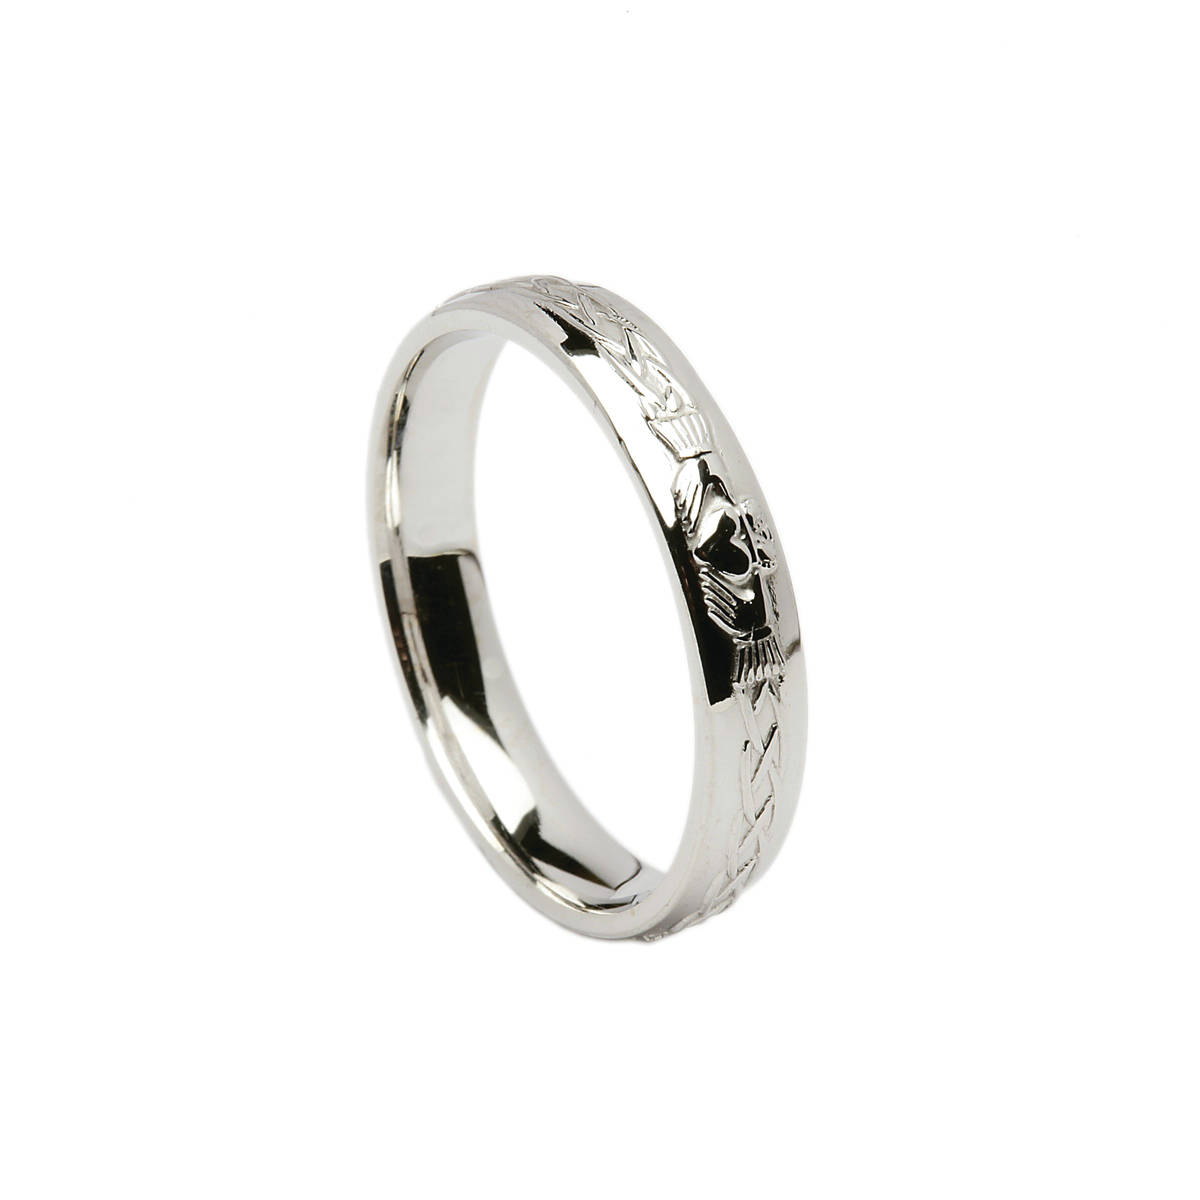 14ct white gold ladies universal fit Celtic Claddagh wedding band  Profile: D-Shape Width: 4.5mm